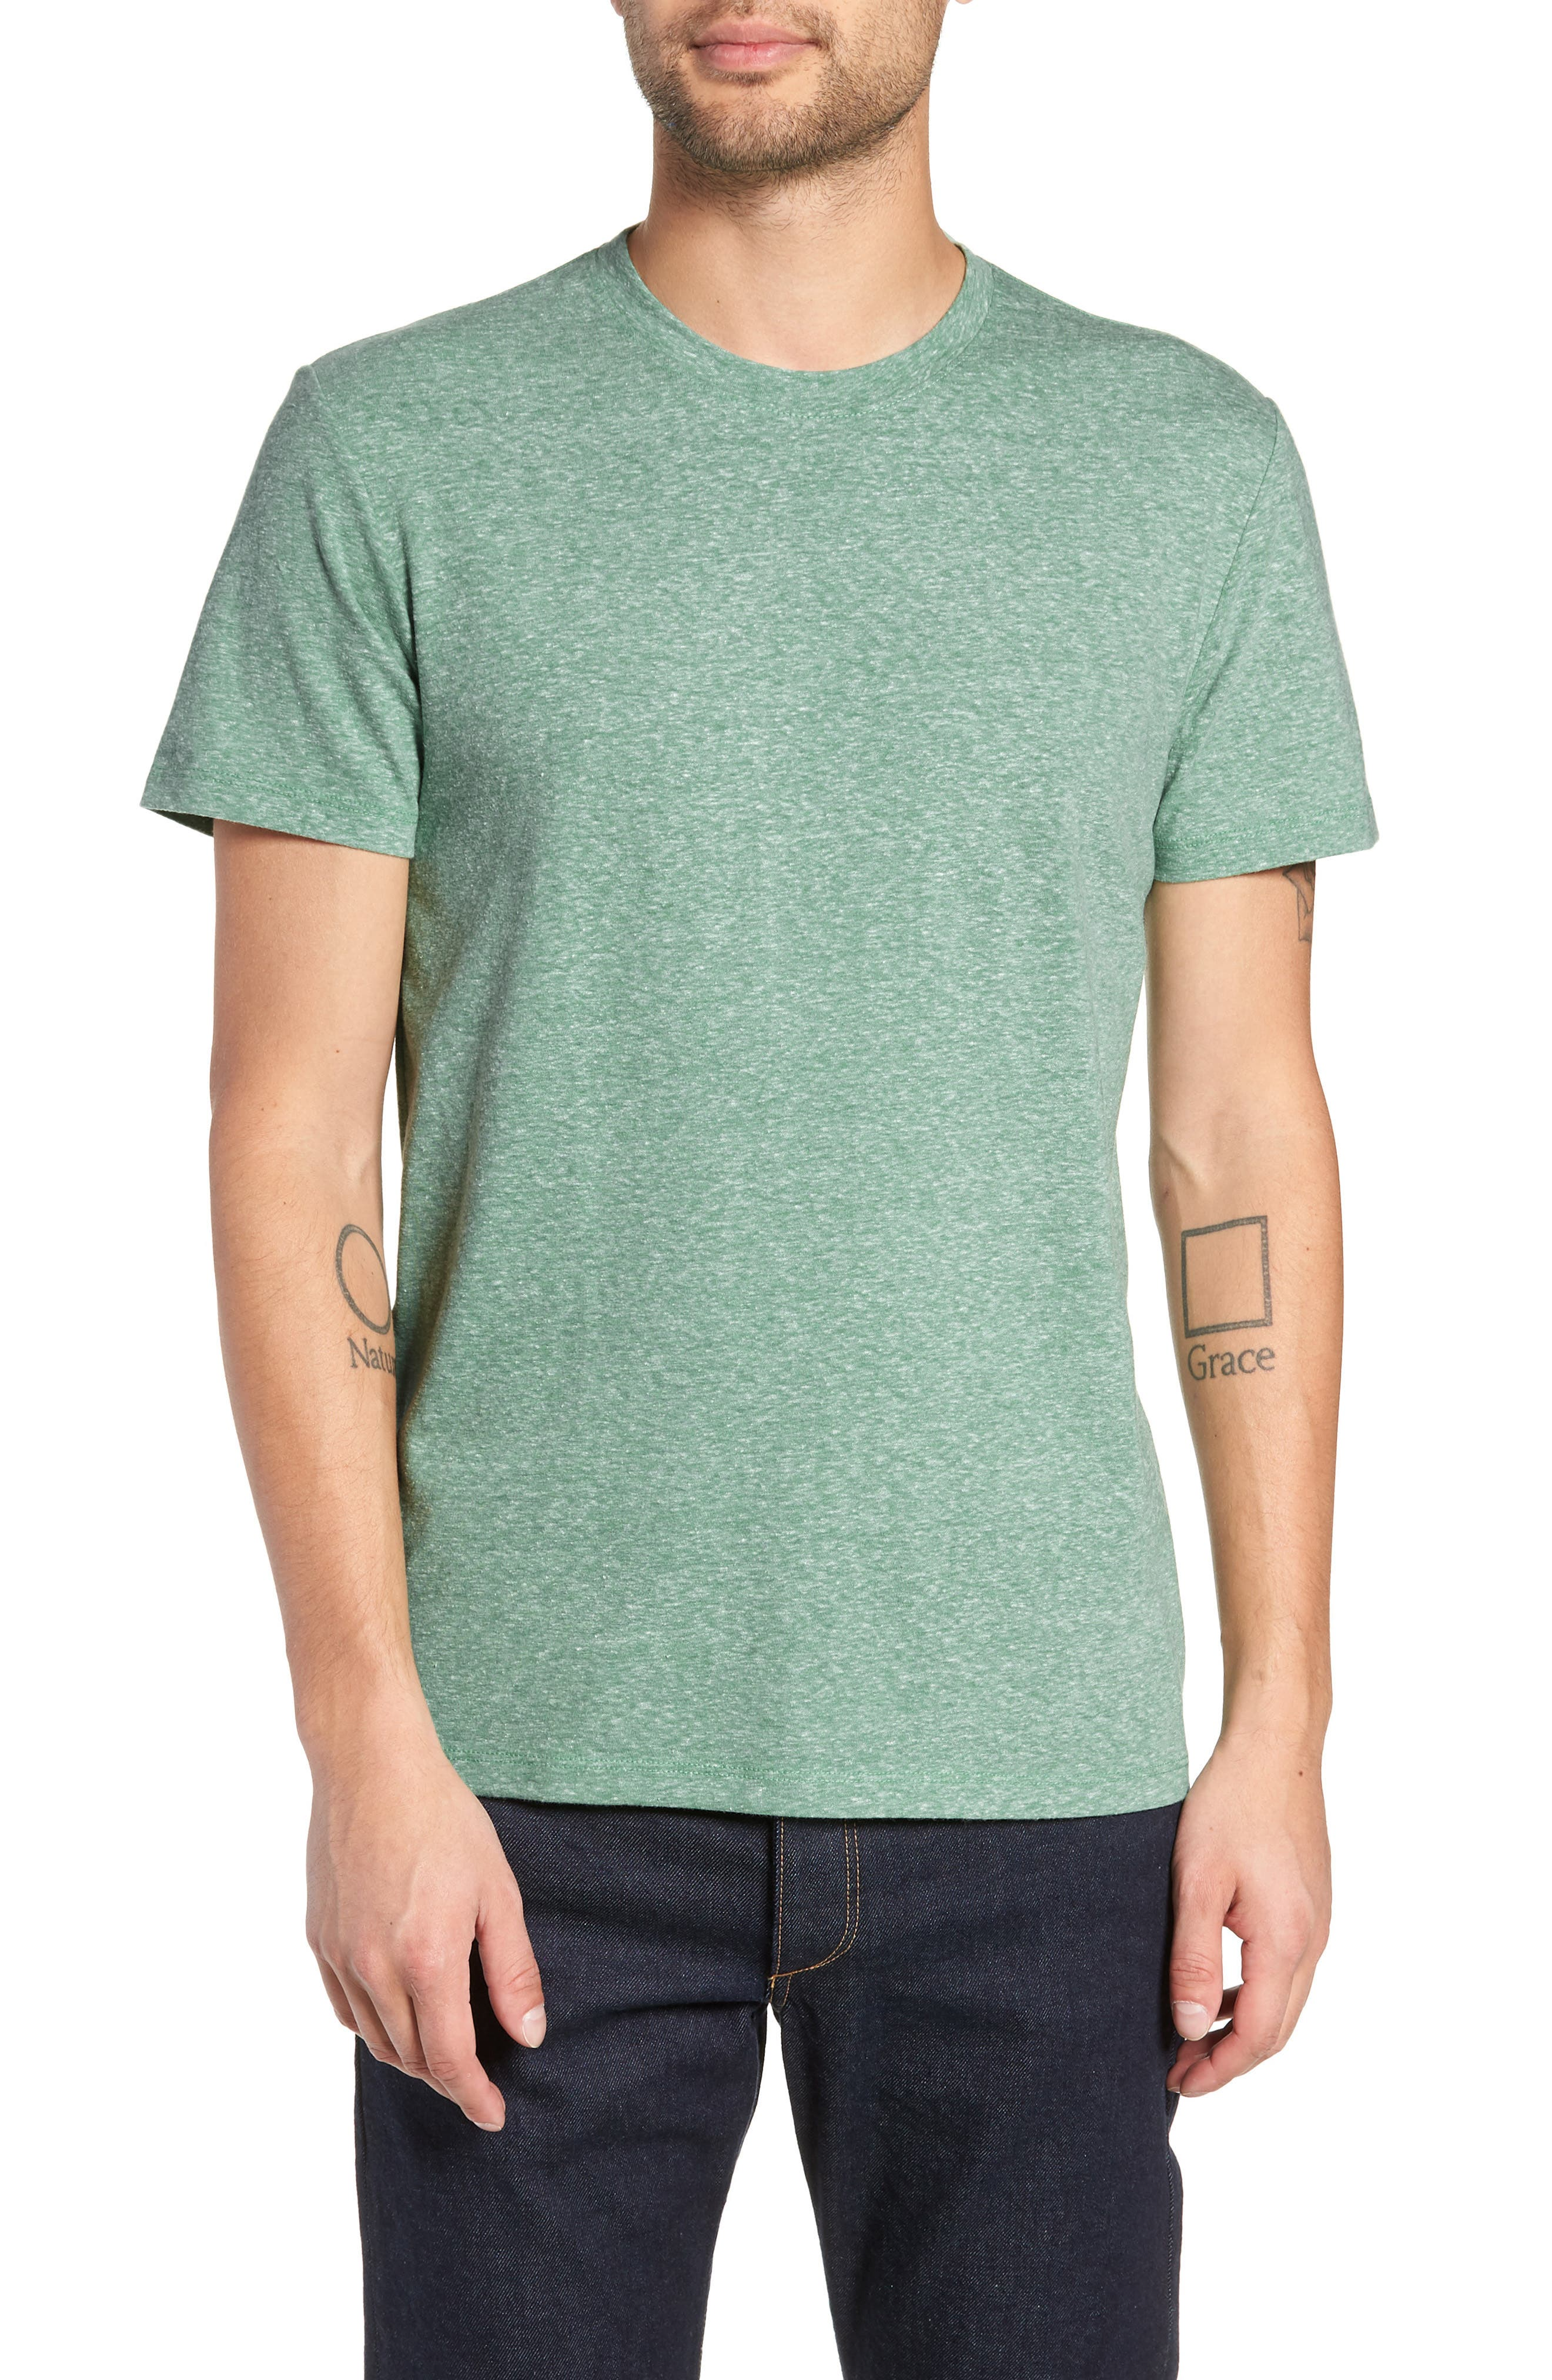 THE RAIL, Solid Crewneck T-Shirt, Main thumbnail 1, color, GREEN FROSTY